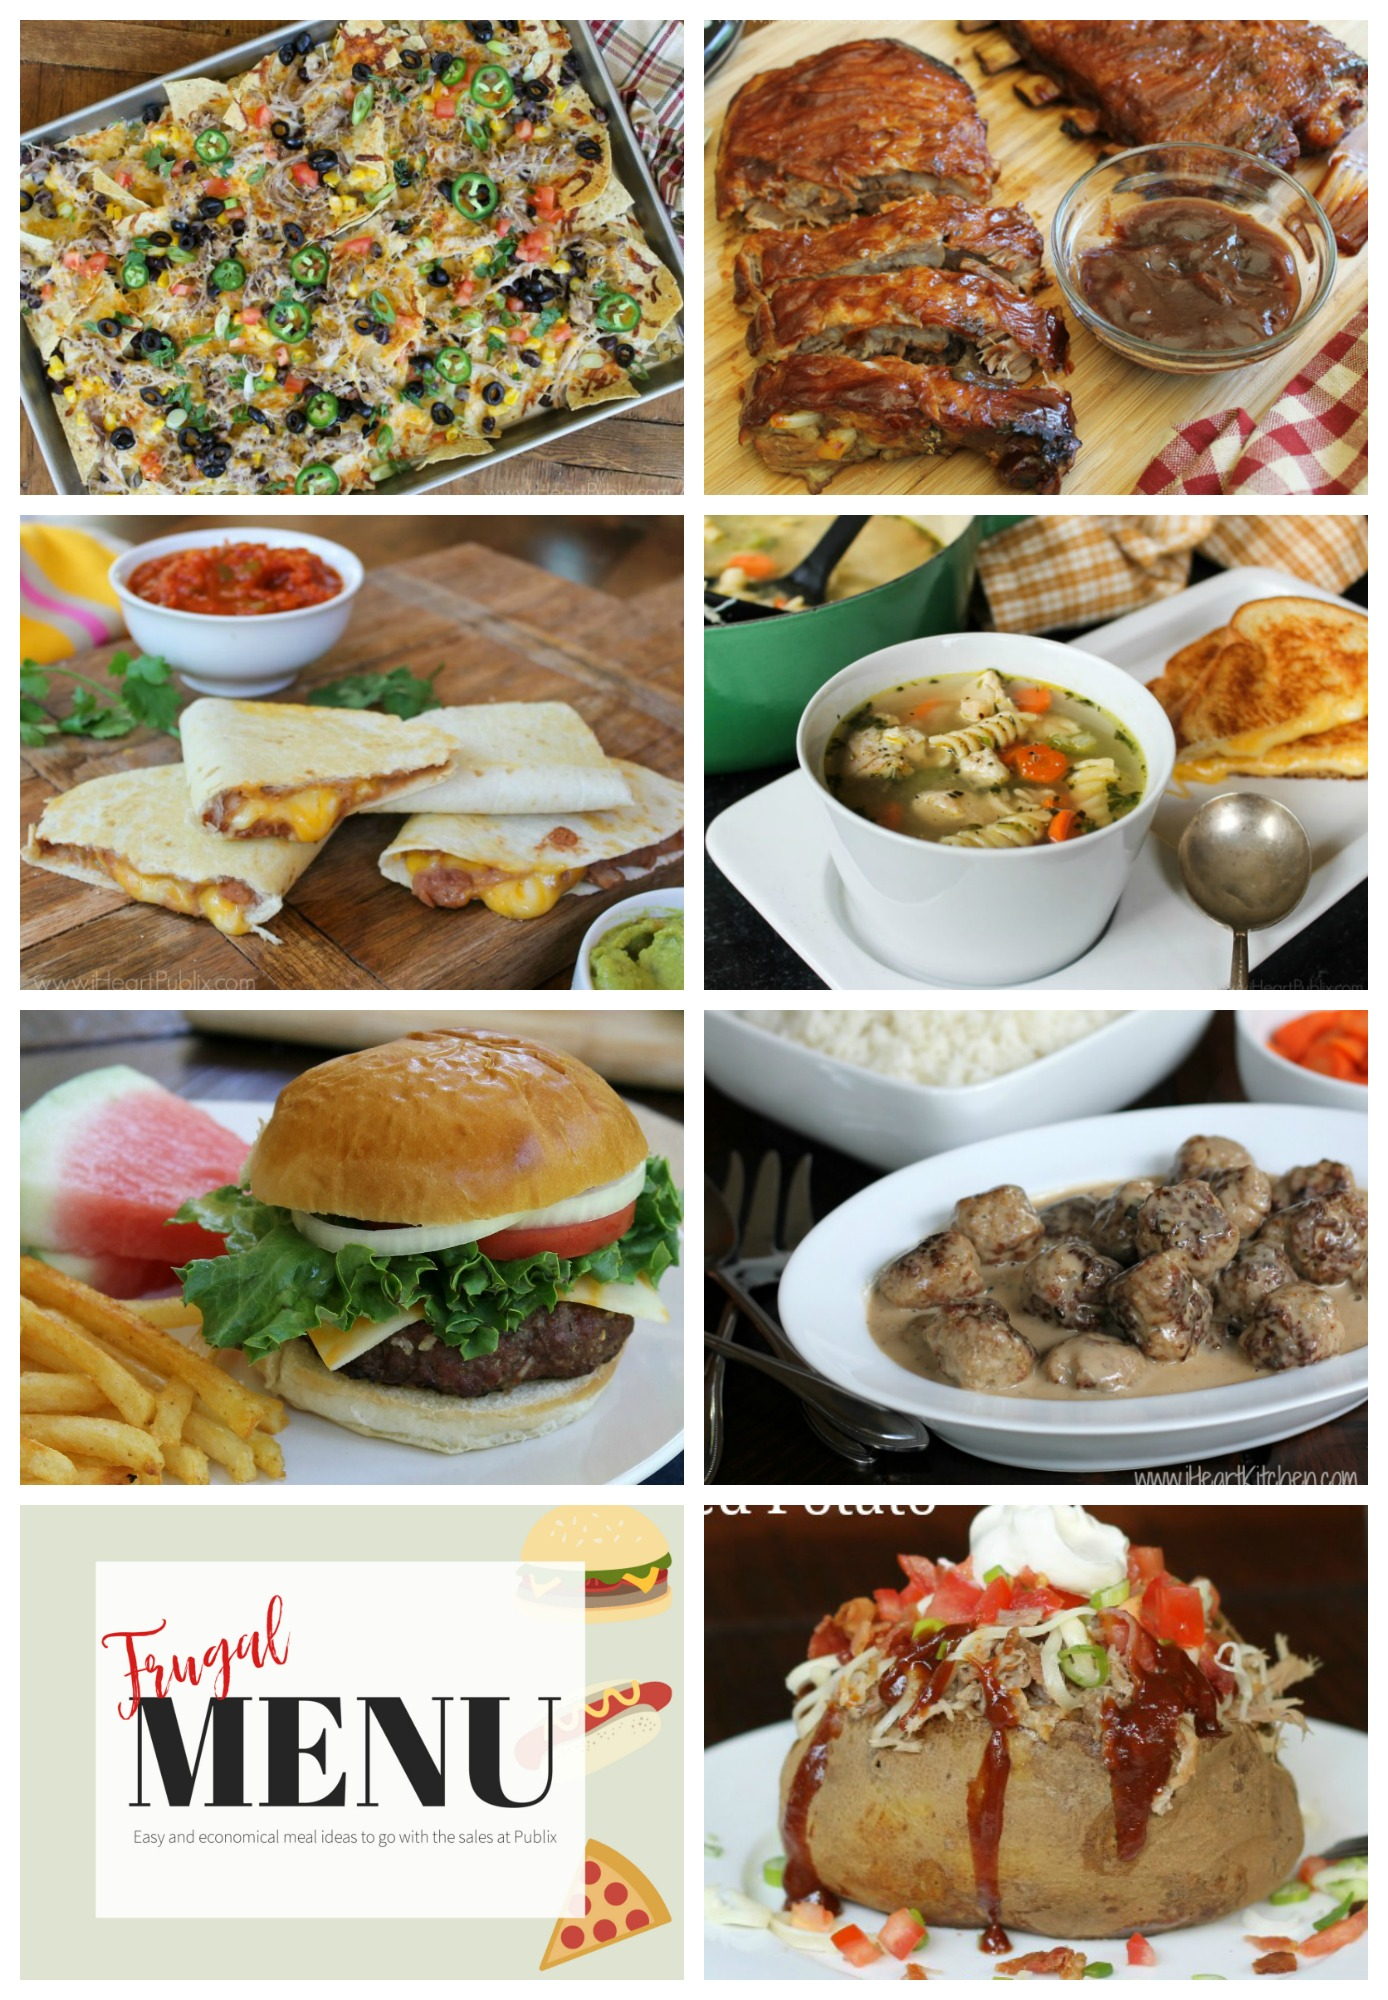 Frugal Family Menu For The Publix Sales Starting 7/2 – Seven Meals That Won't Break Your Budget on I Heart Publix